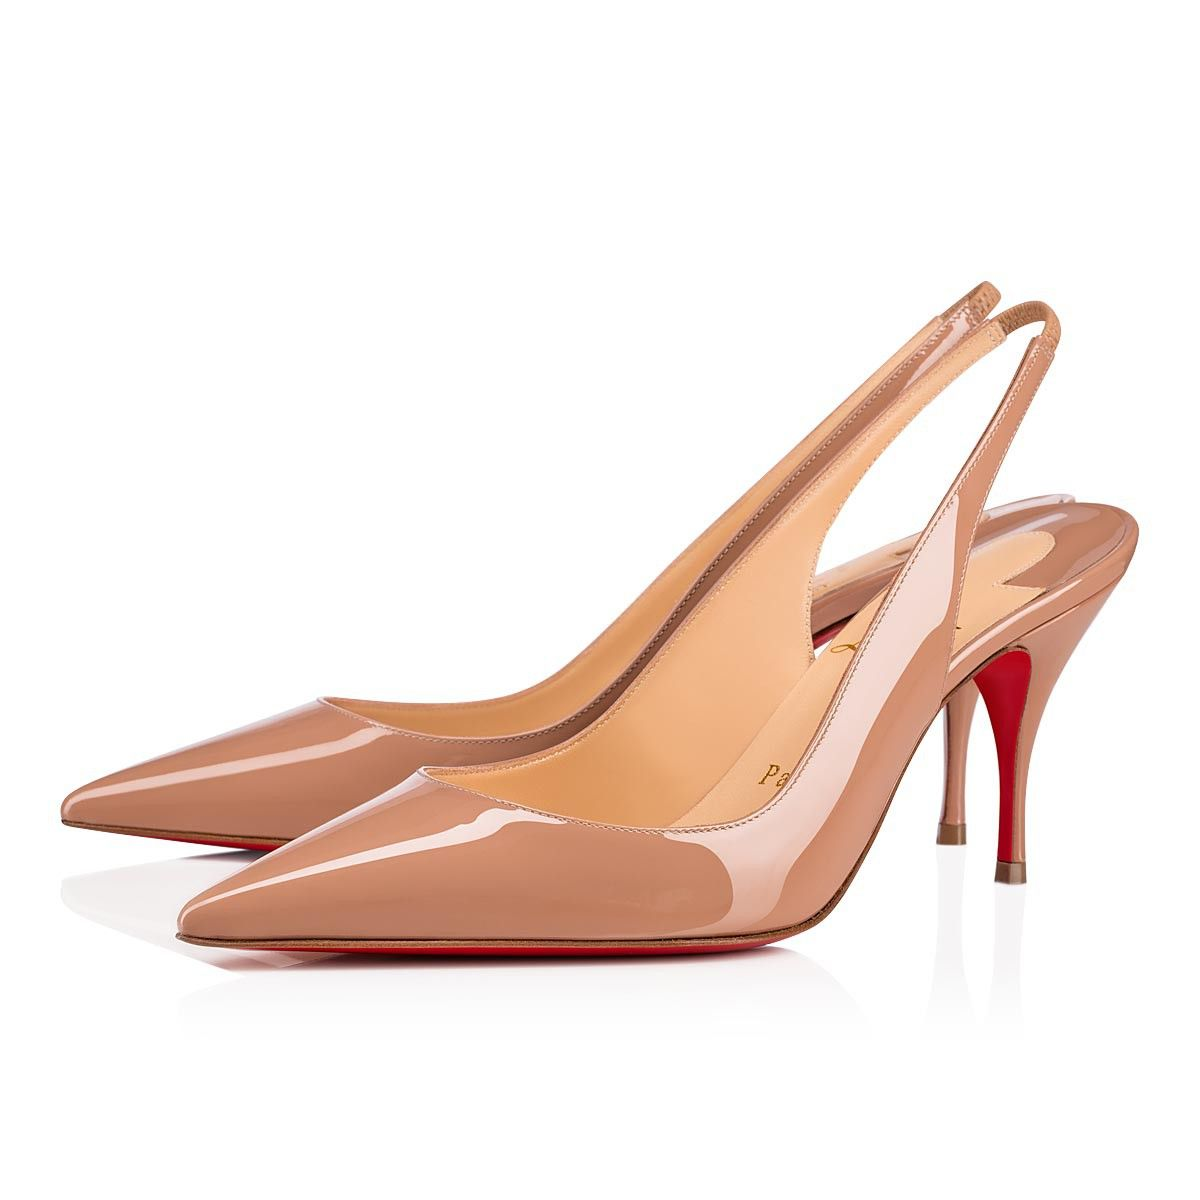 0e3ba0aad07 Clare Sling 80 Nude Patent Leather - Women Shoes - Christian ...